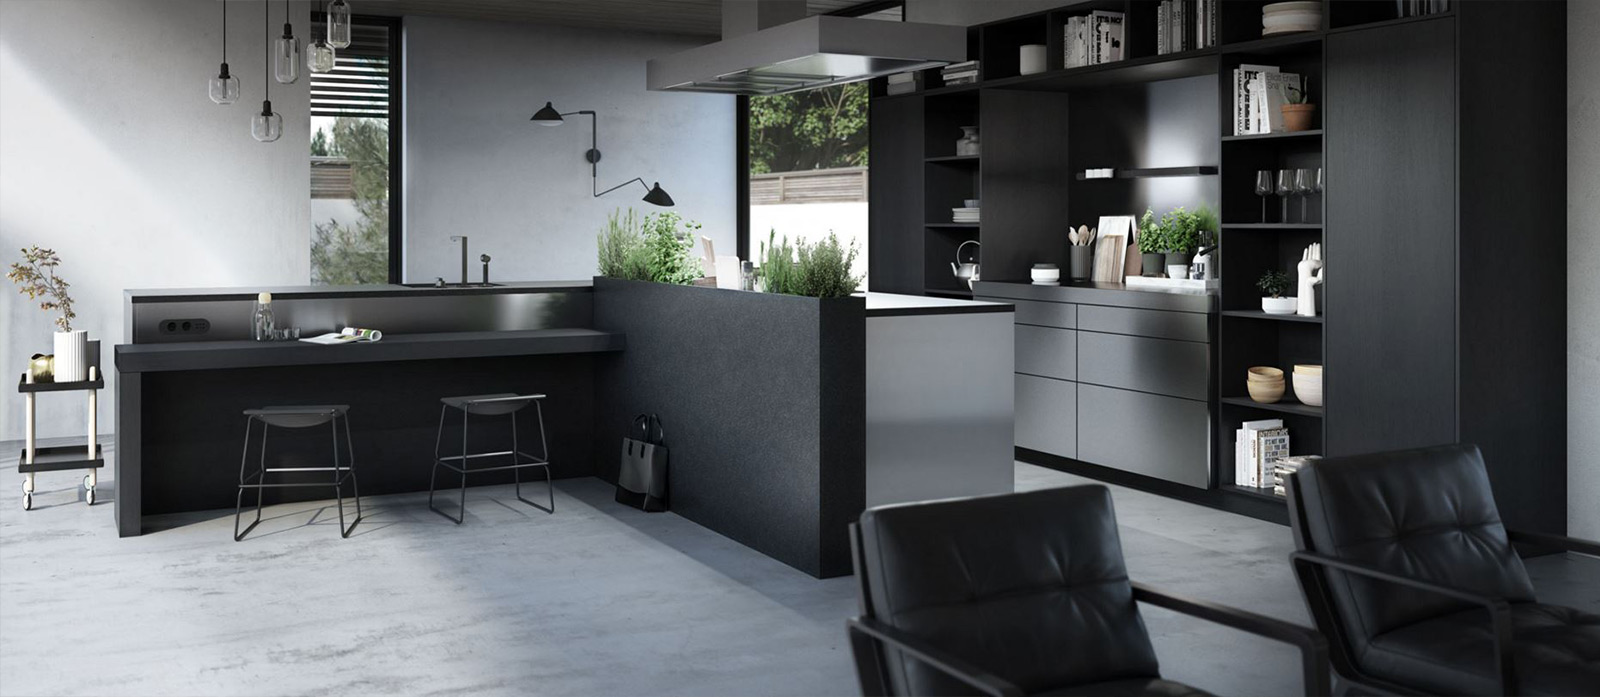 cuisine cuisiniste besan on cuisine quip e rangement lectrom nager vaissier. Black Bedroom Furniture Sets. Home Design Ideas